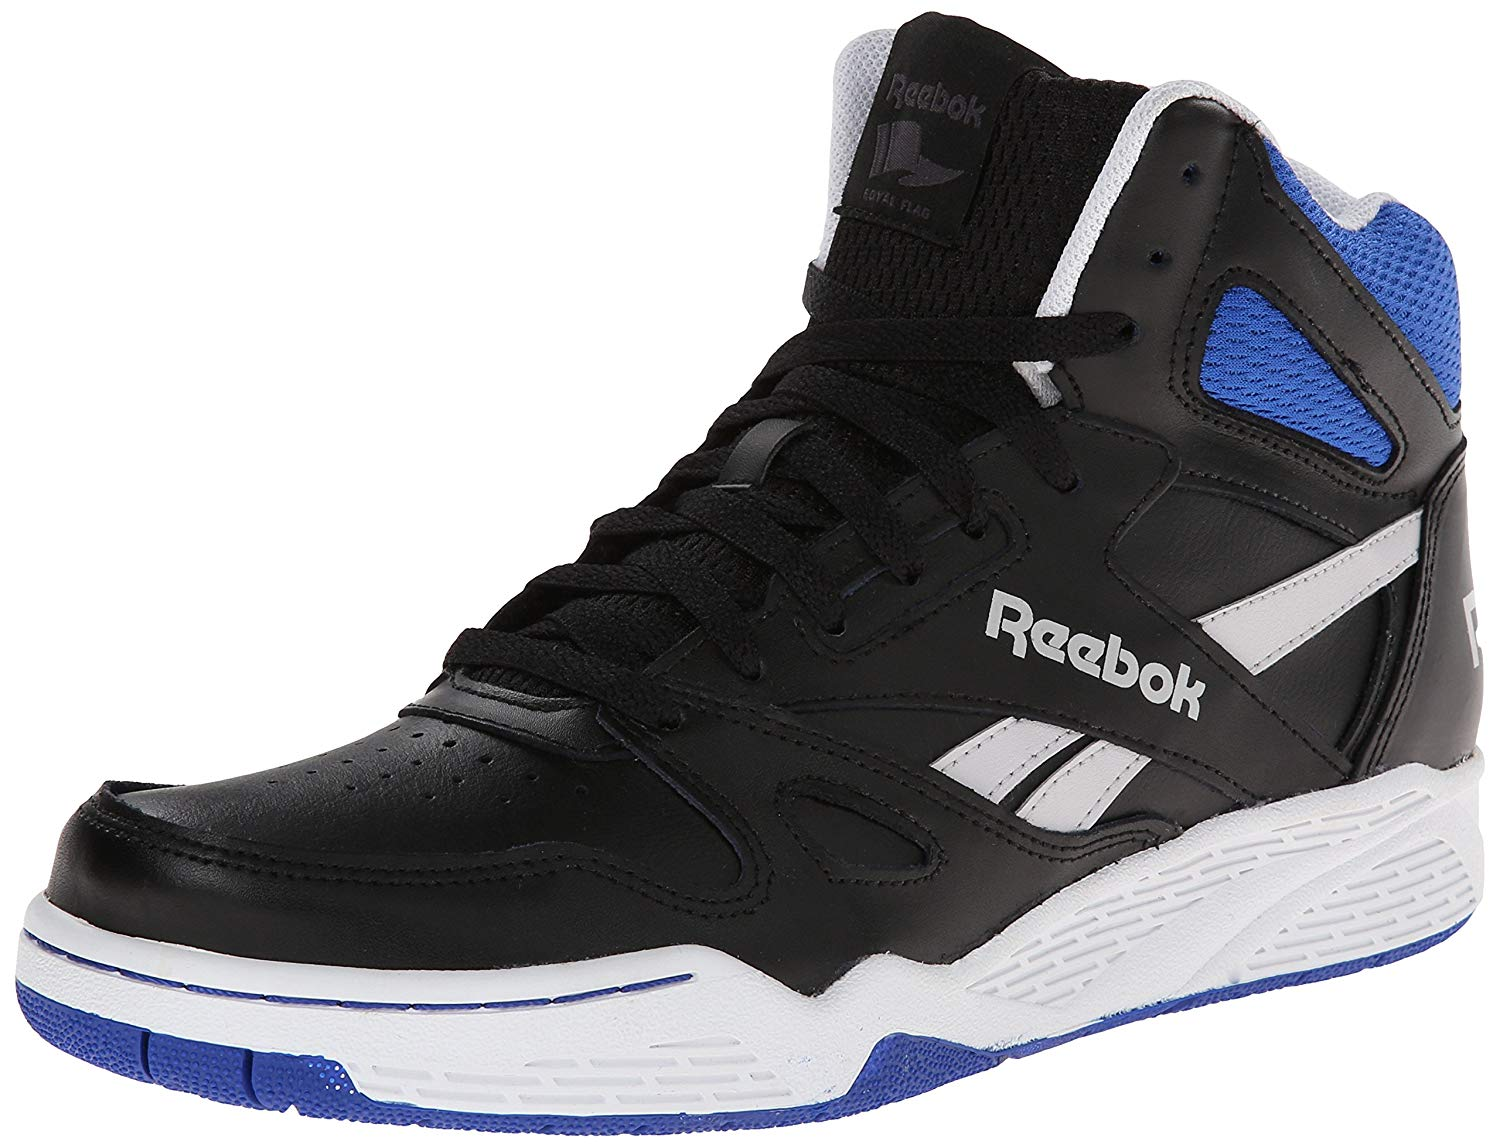 Reebok Royal BB4500 Angled View